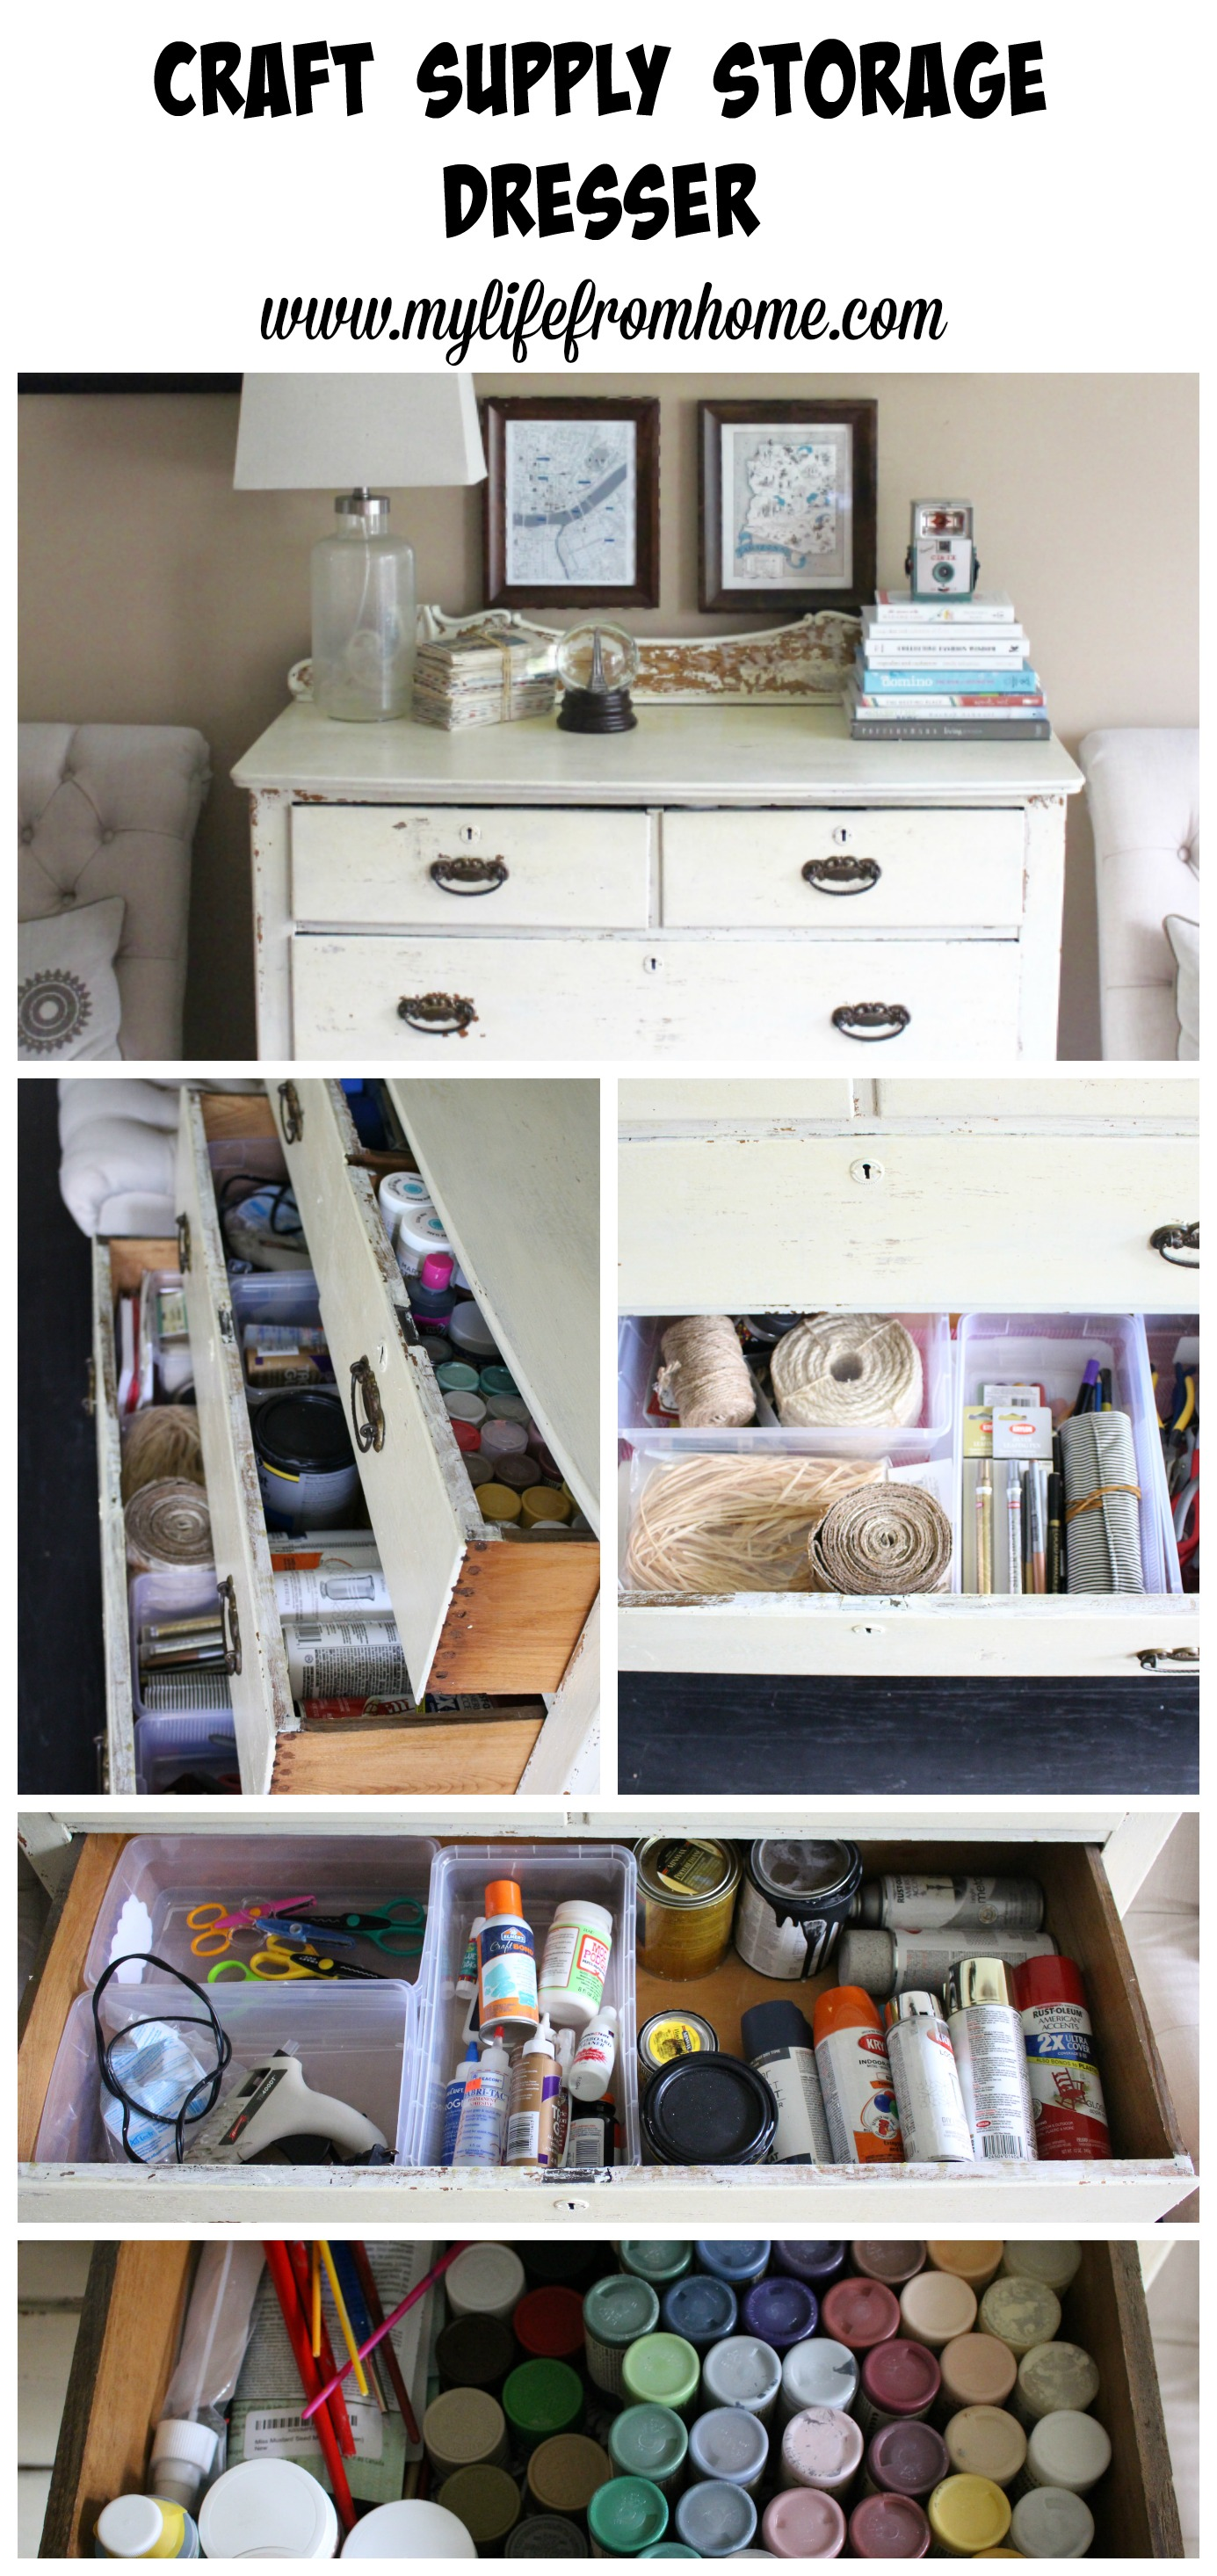 Craft Supply Storage Dresser by www.mylifefromhome.com